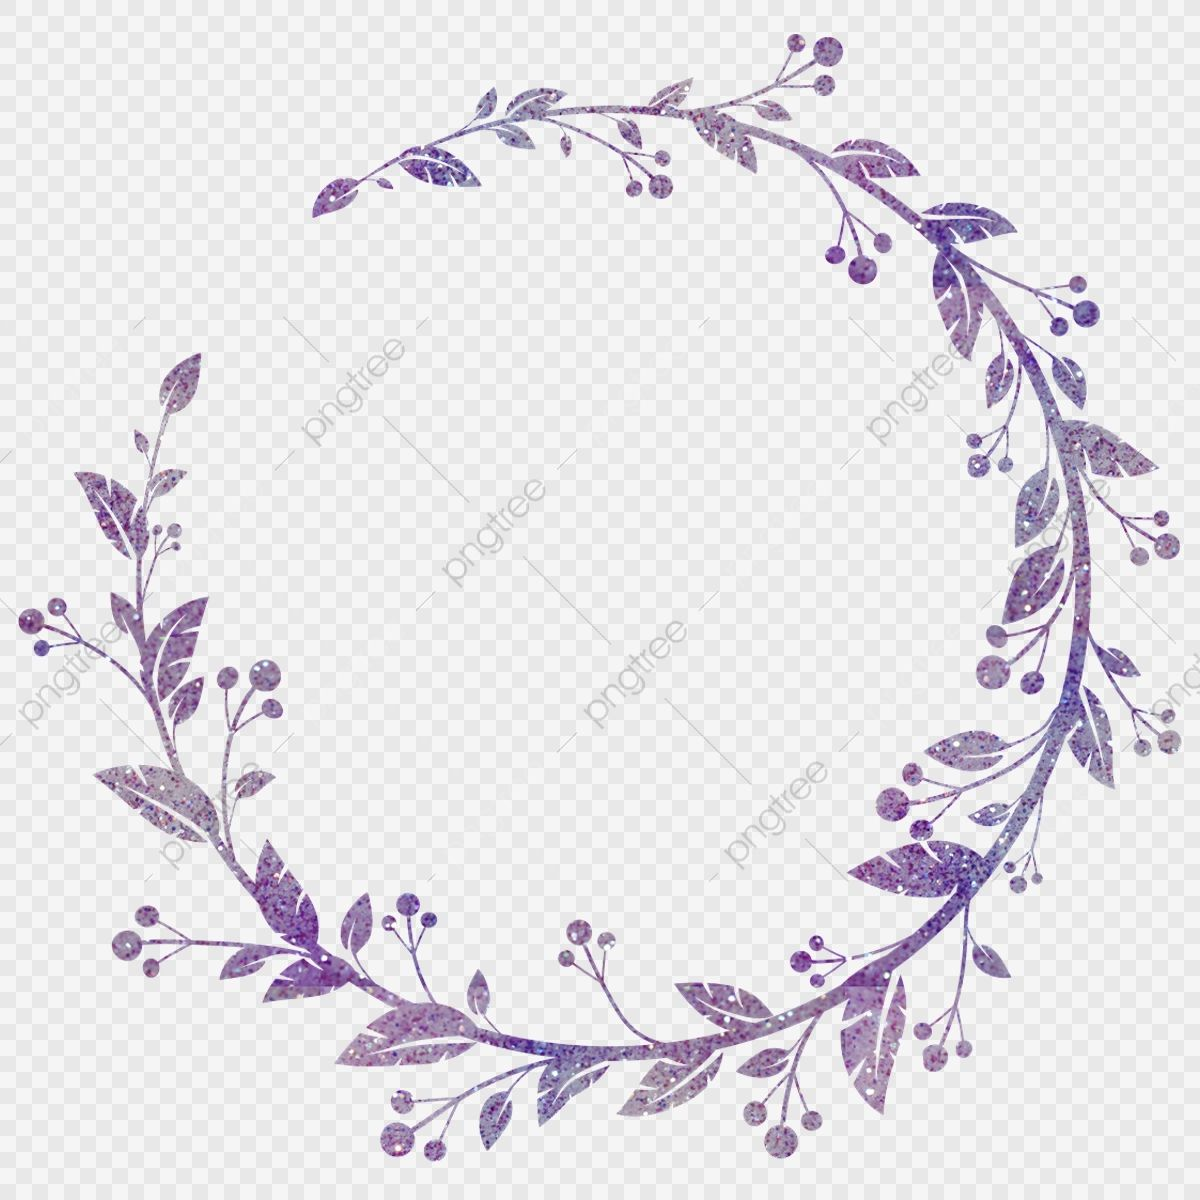 Hand Painted Wreath Watercolor Transparent Floral Purple Wreath Flowers Frame Watercolor Clipart Floral Border Floral Frame Png And Vector With Transparent B Flower Frame Wreath Watercolor Floral Vector Png